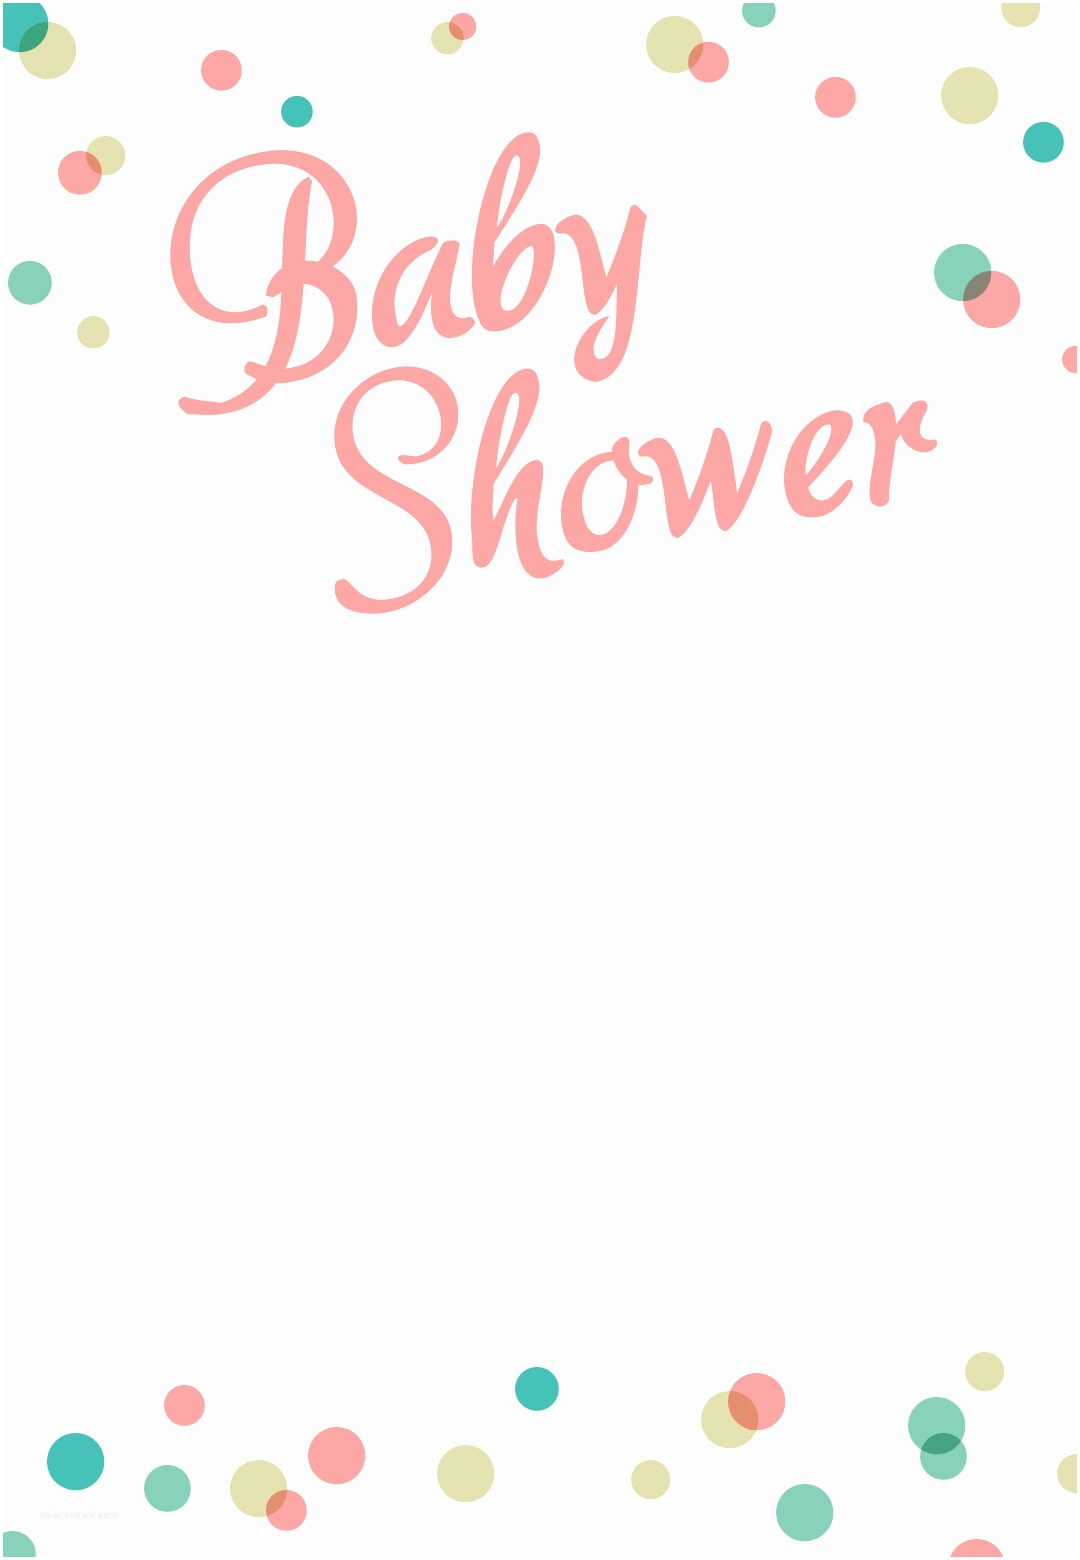 image about Printable Baby Shower Invitation Templates titled Free of charge Boy or girl Shower Invitation Template Dancing Dots Borders